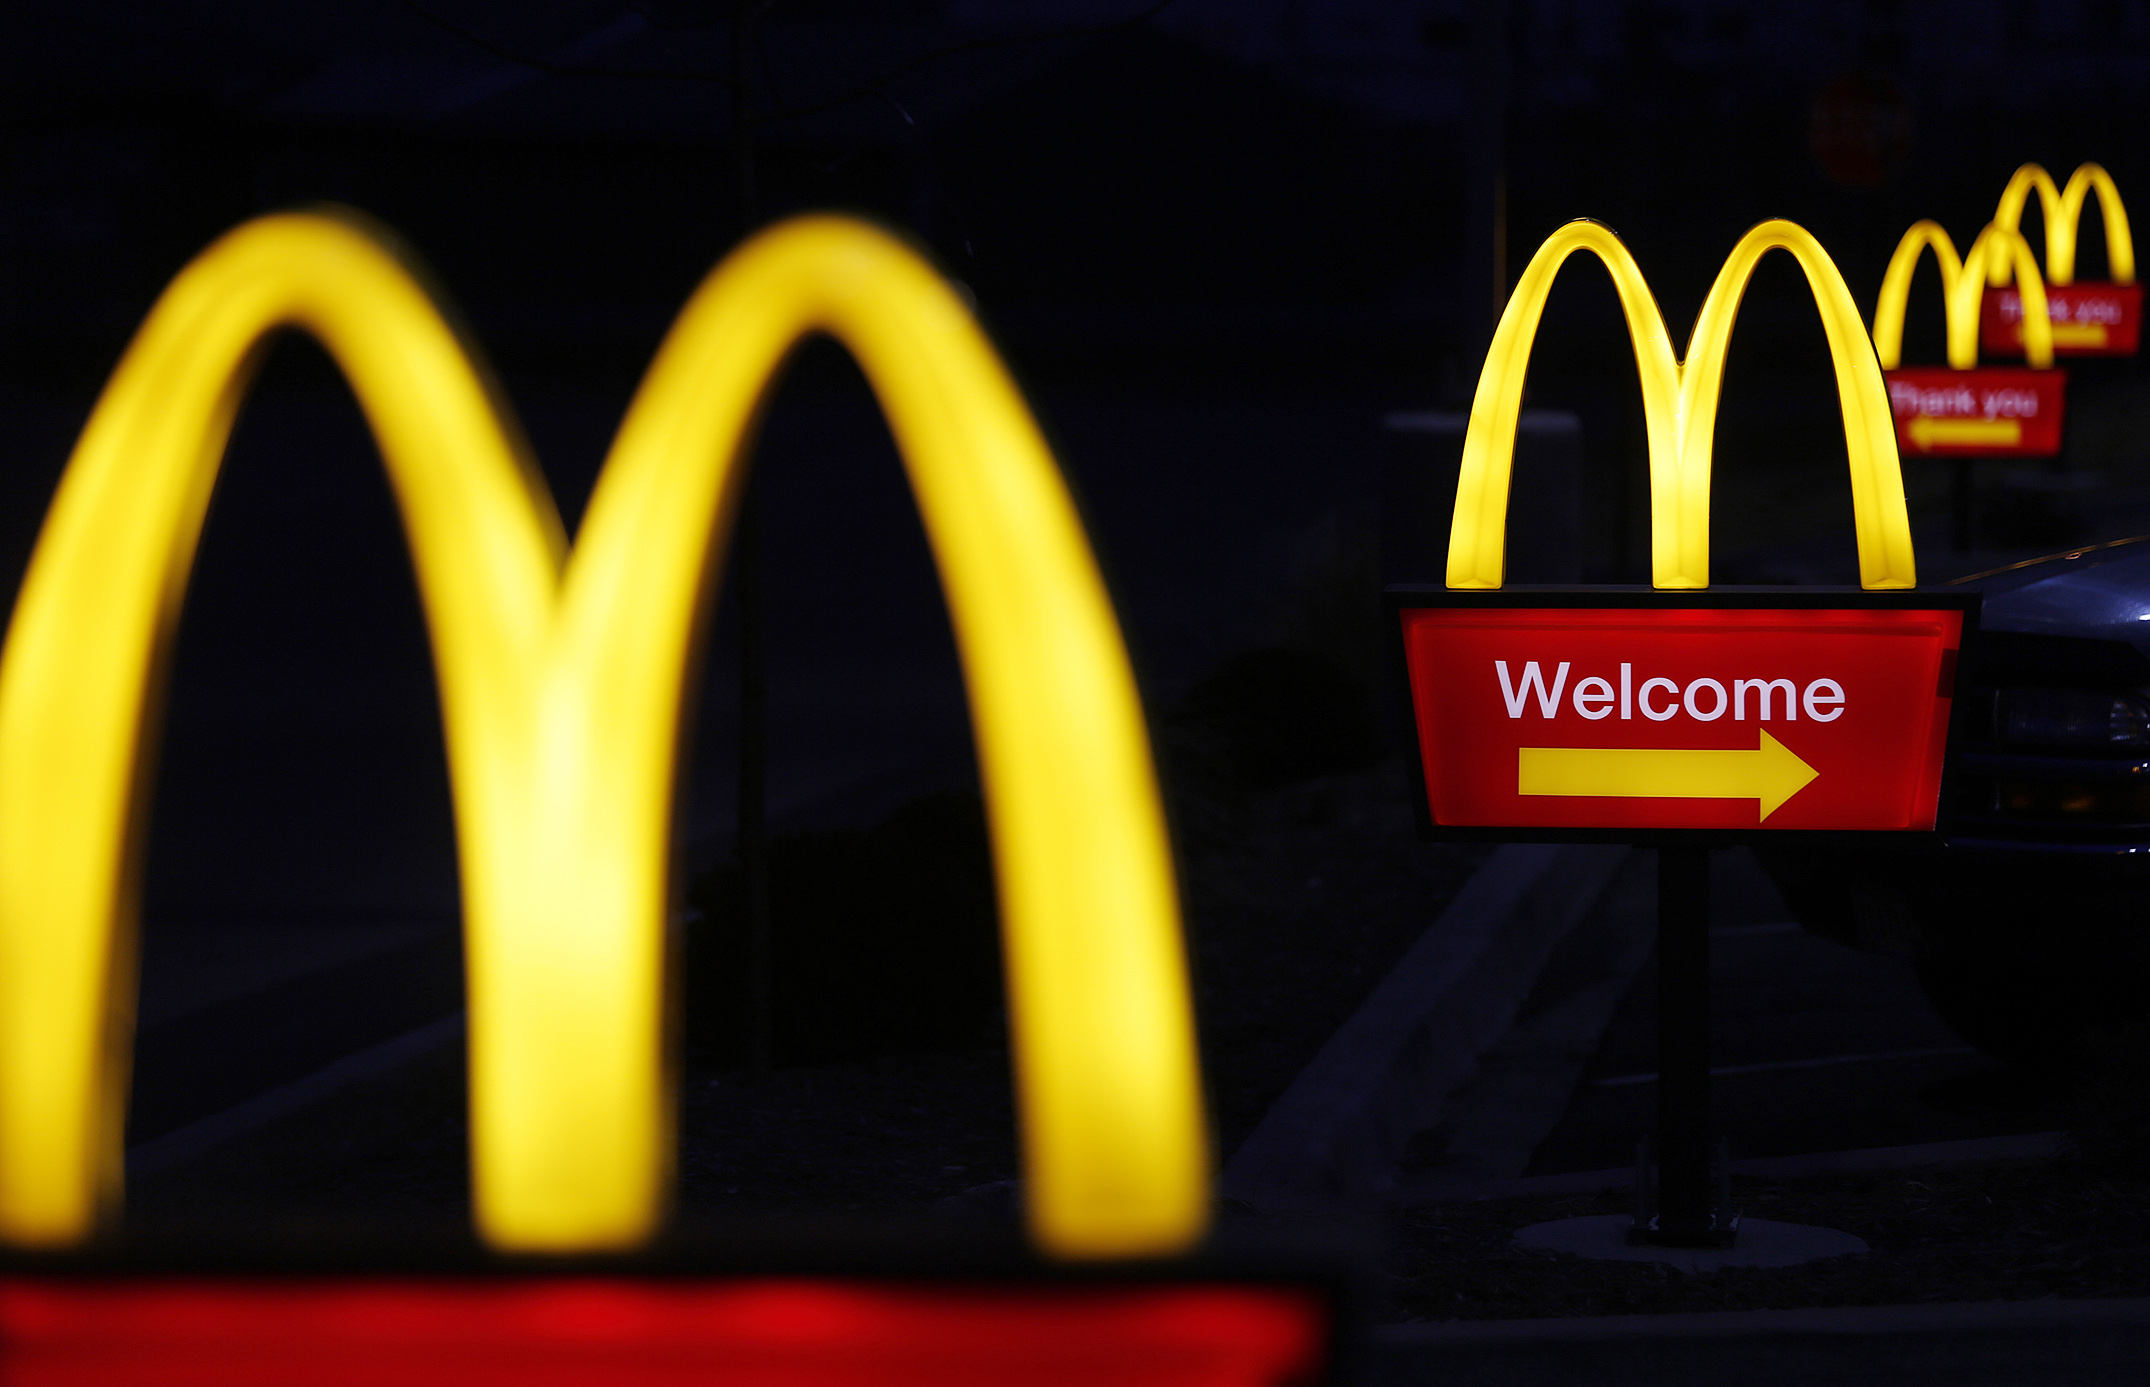 Illuminated golden arches mark the entrance to a McDonald's restaurant in Shelbyville, Ky.